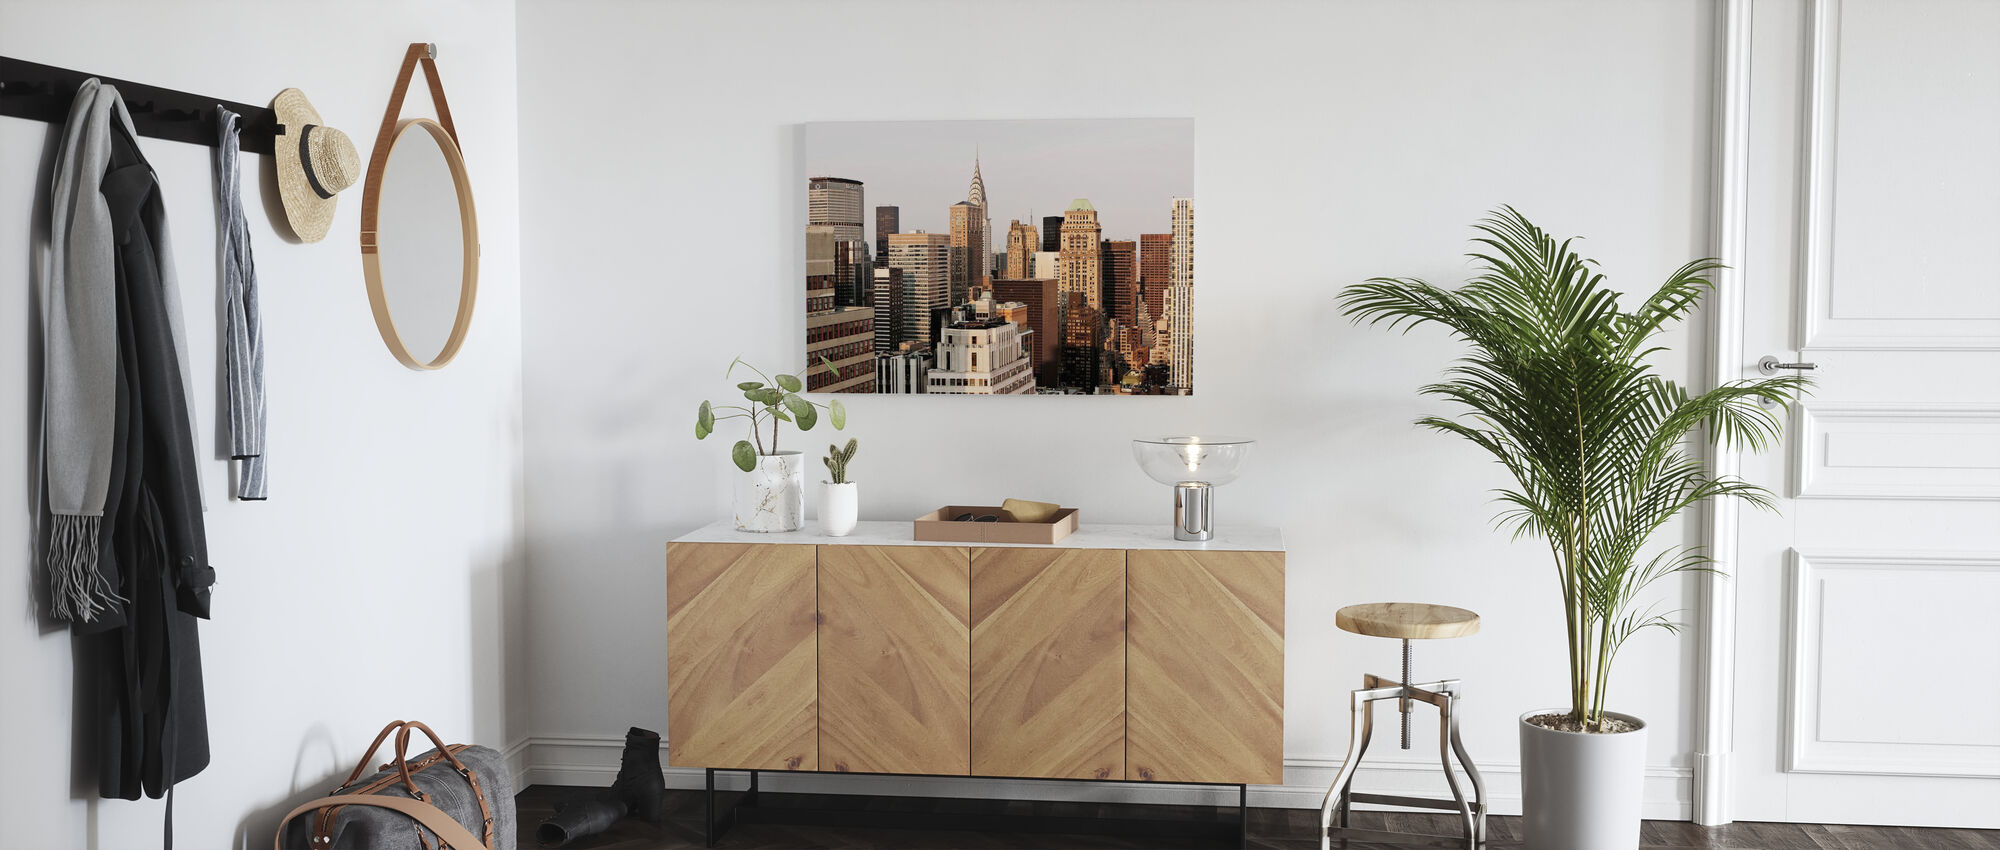 Shades of Beige and Sand - Canvas print - Hallway